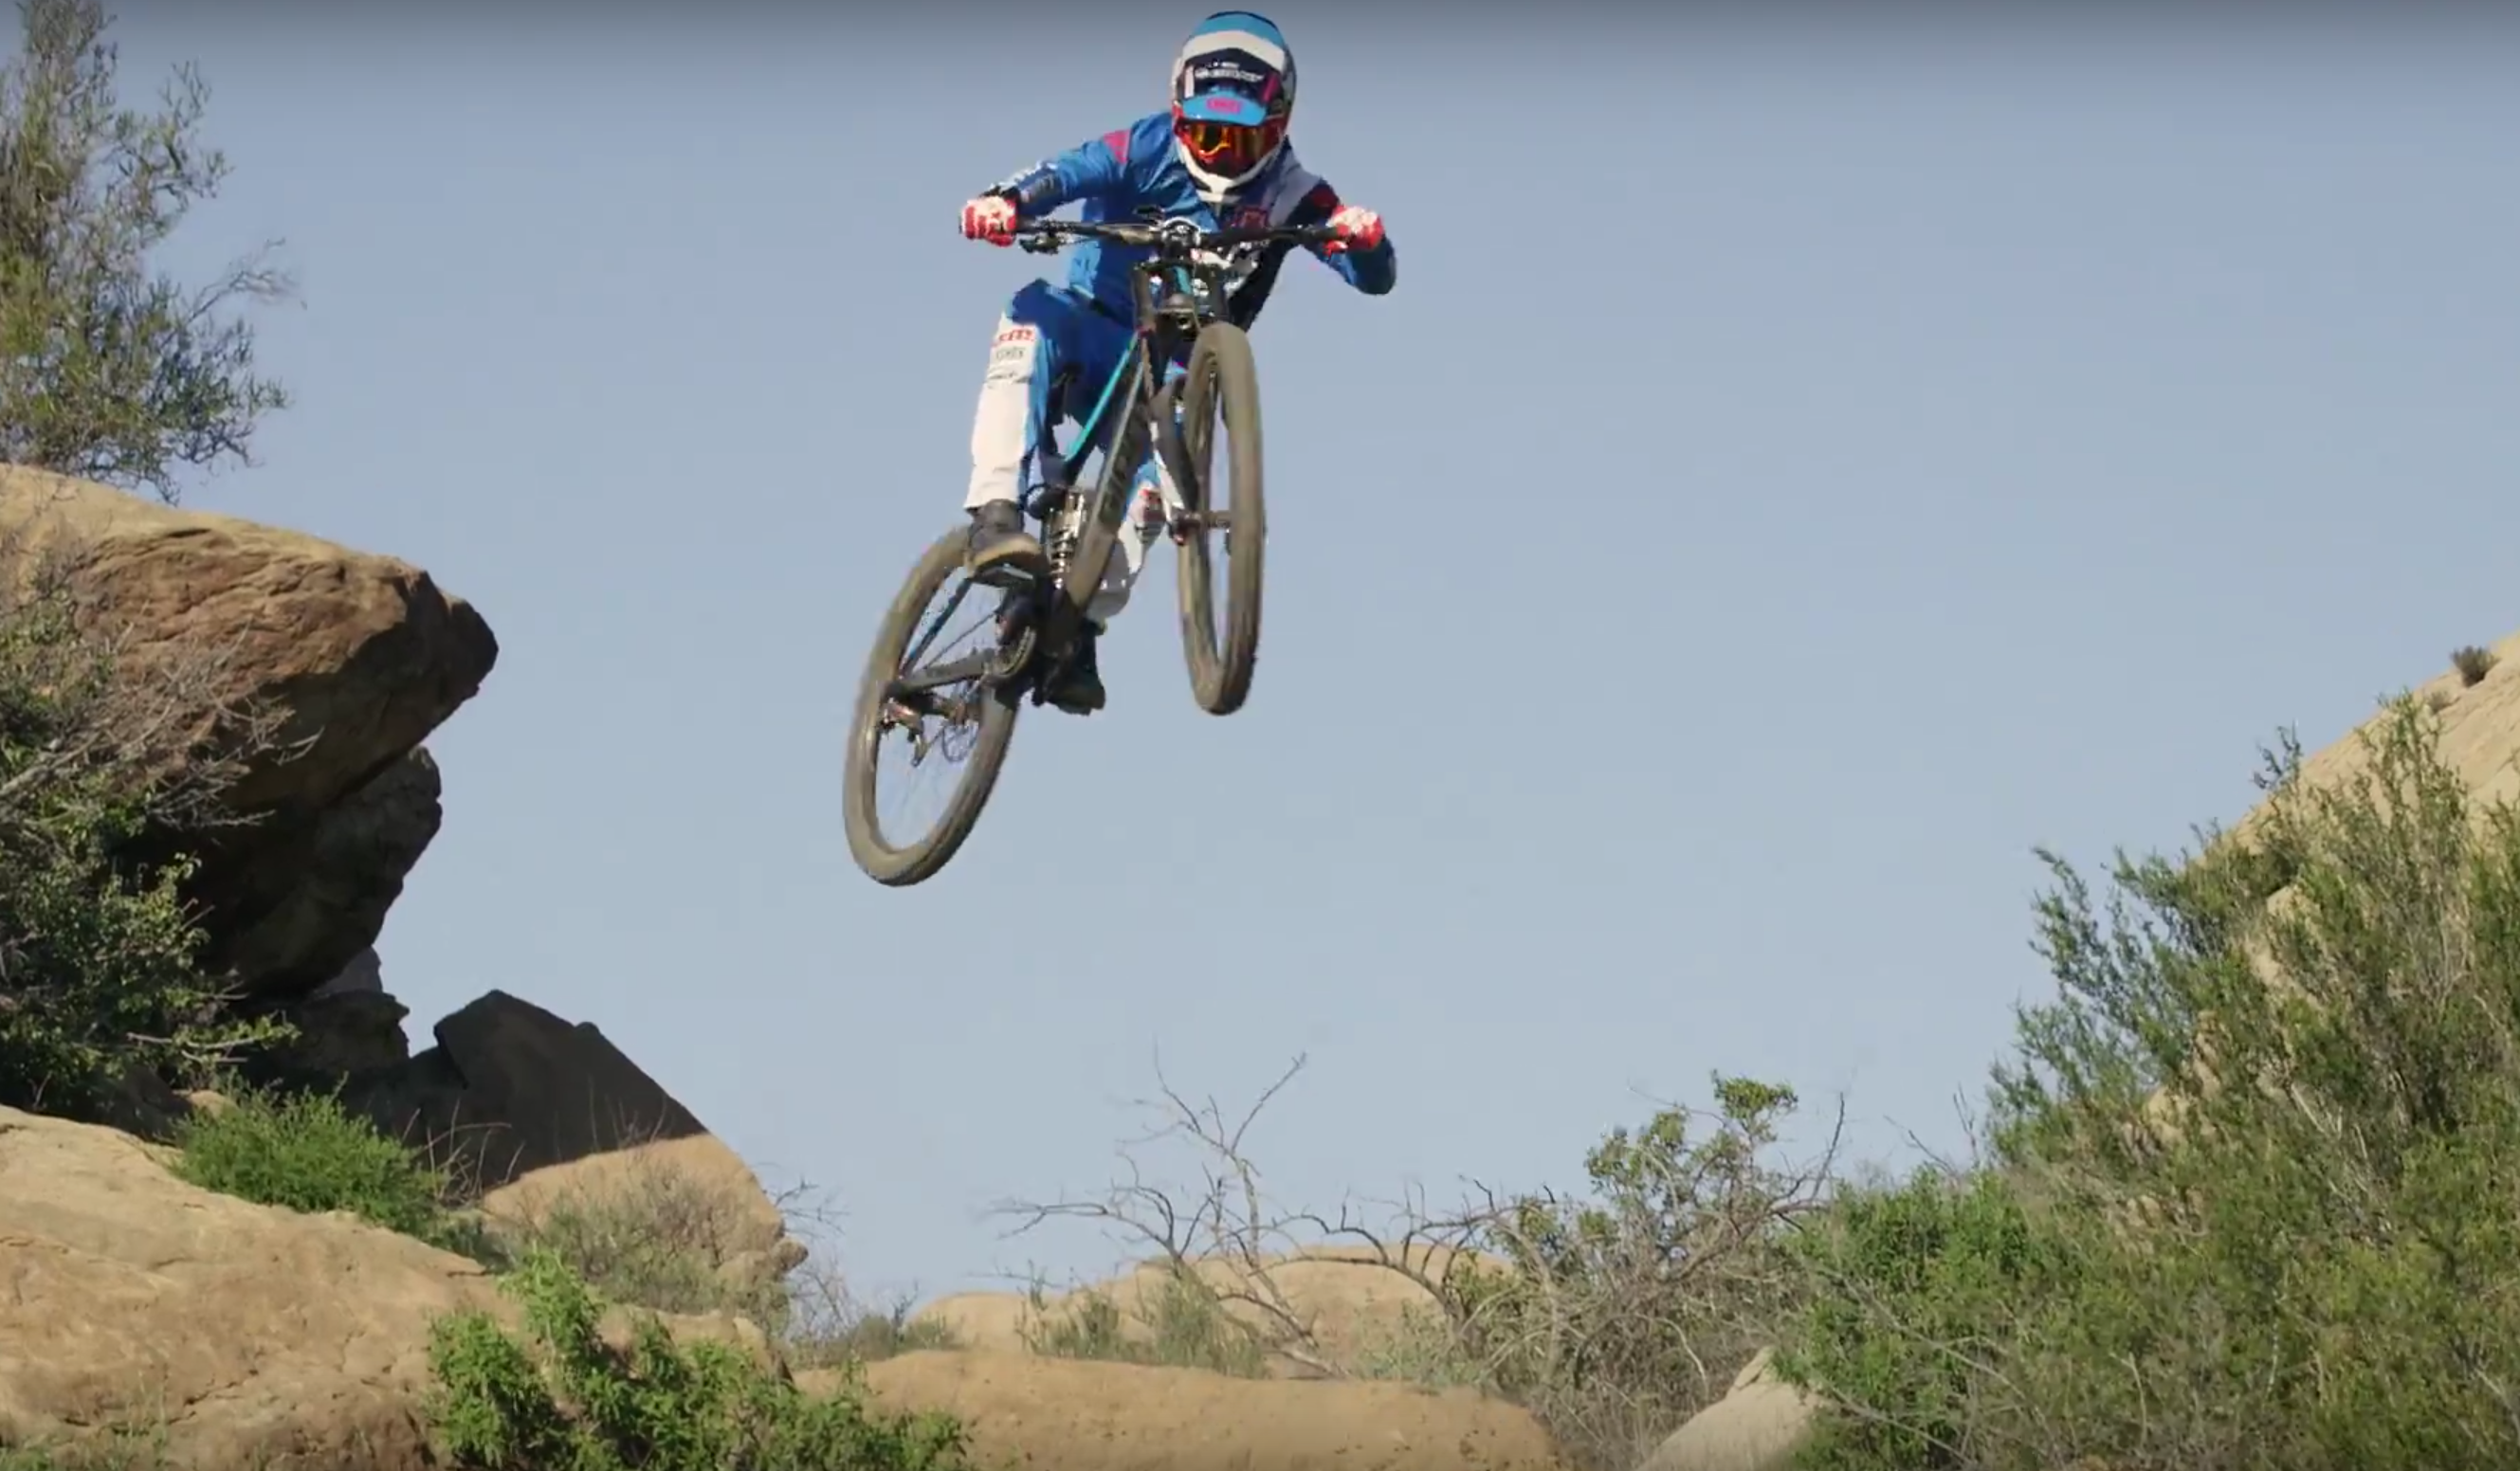 Short but Sweet - 2016 Giant Factory Off-Road Team Intro Video